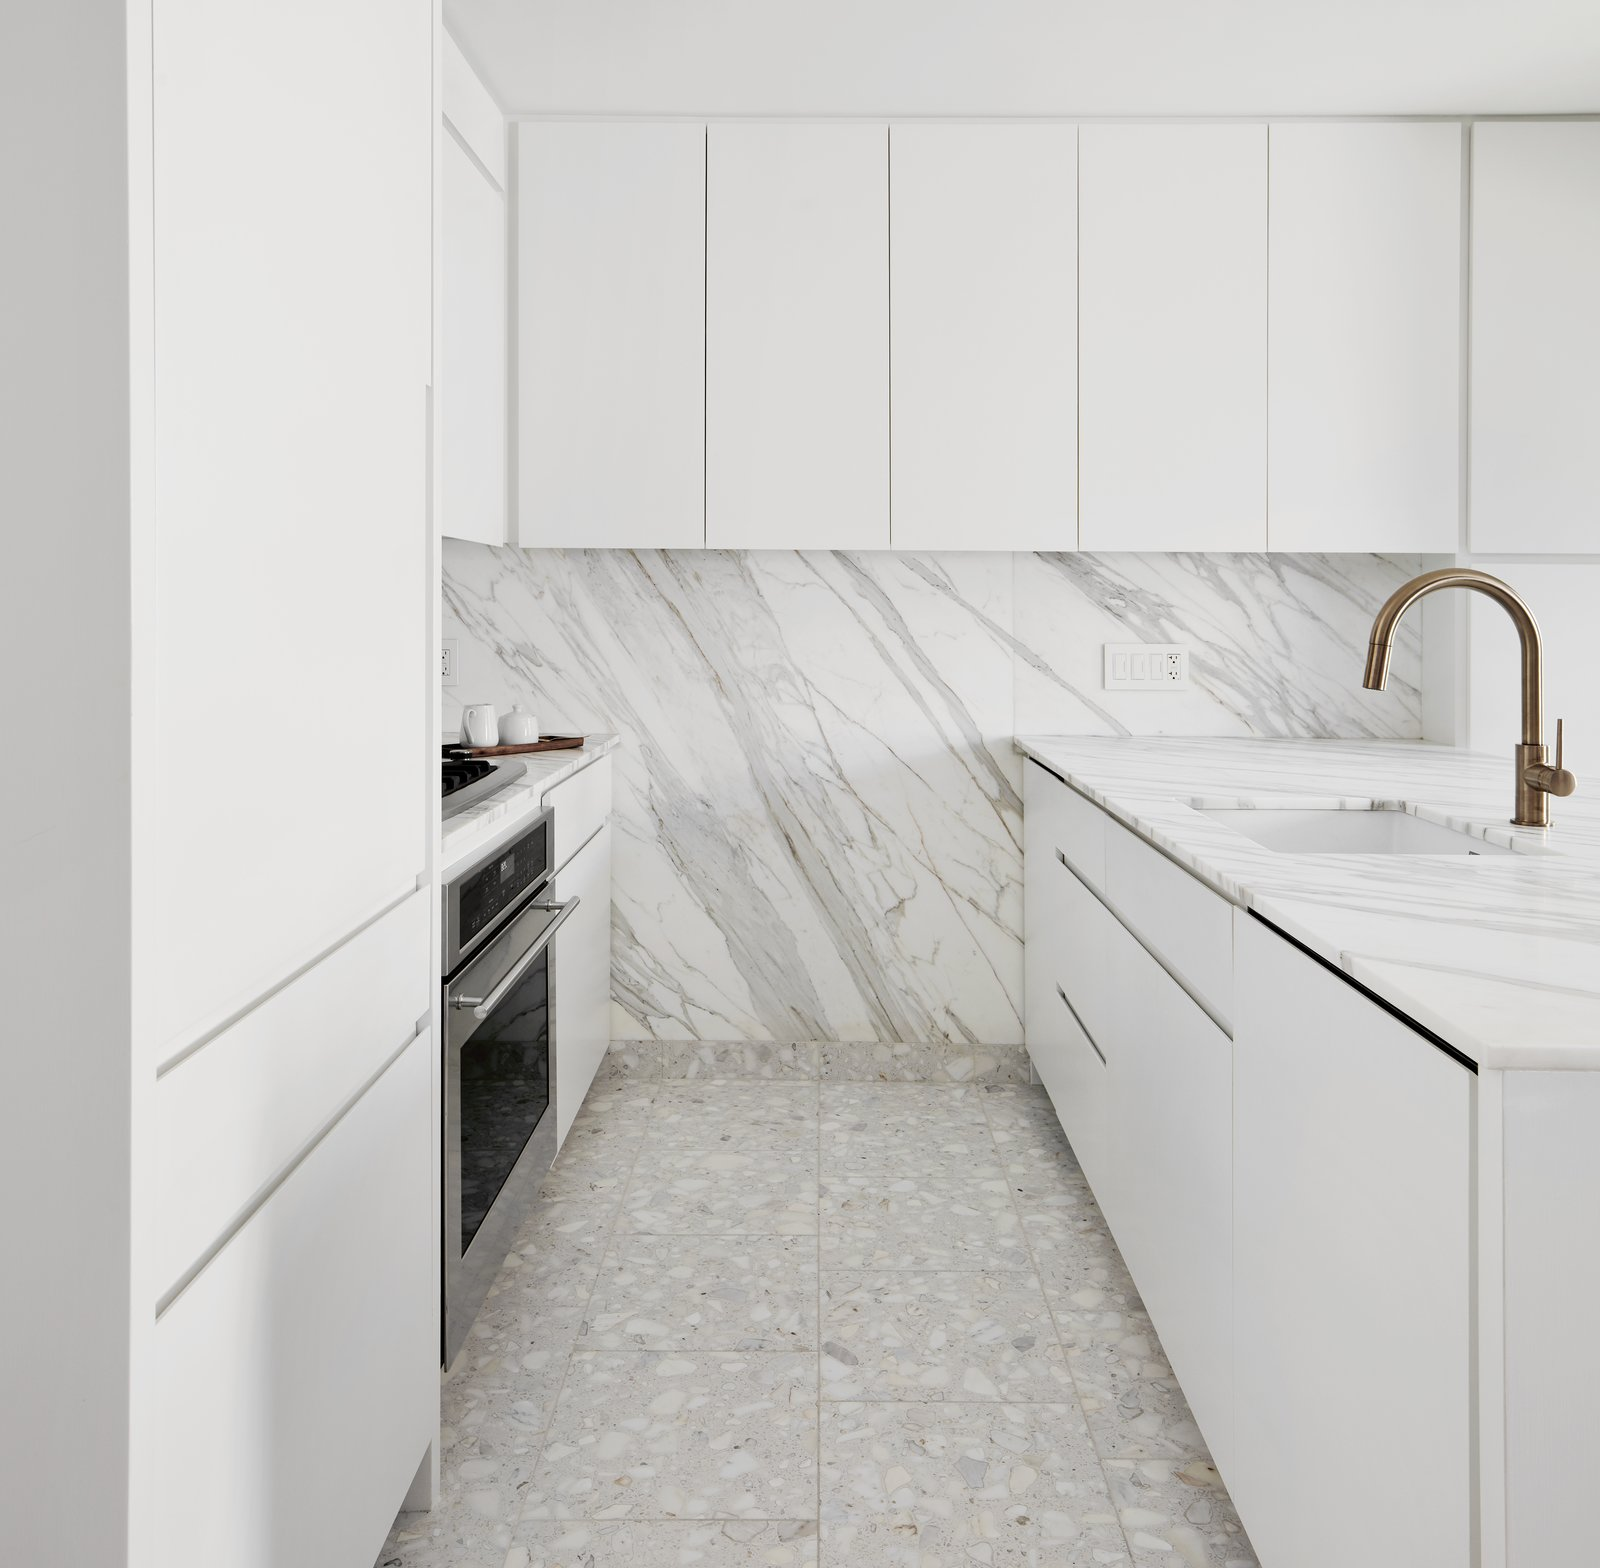 Kitchen, Cooktops, Terrazzo, White, Ceiling, Marble, Wall Oven, Marble, Undermount, and Refrigerator Terrazzo Floor / Marble Backsplash Kitchen  Kitchen Cooktops Undermount Wall Oven Marble White Photos from Chelsea Pied-à-Terre